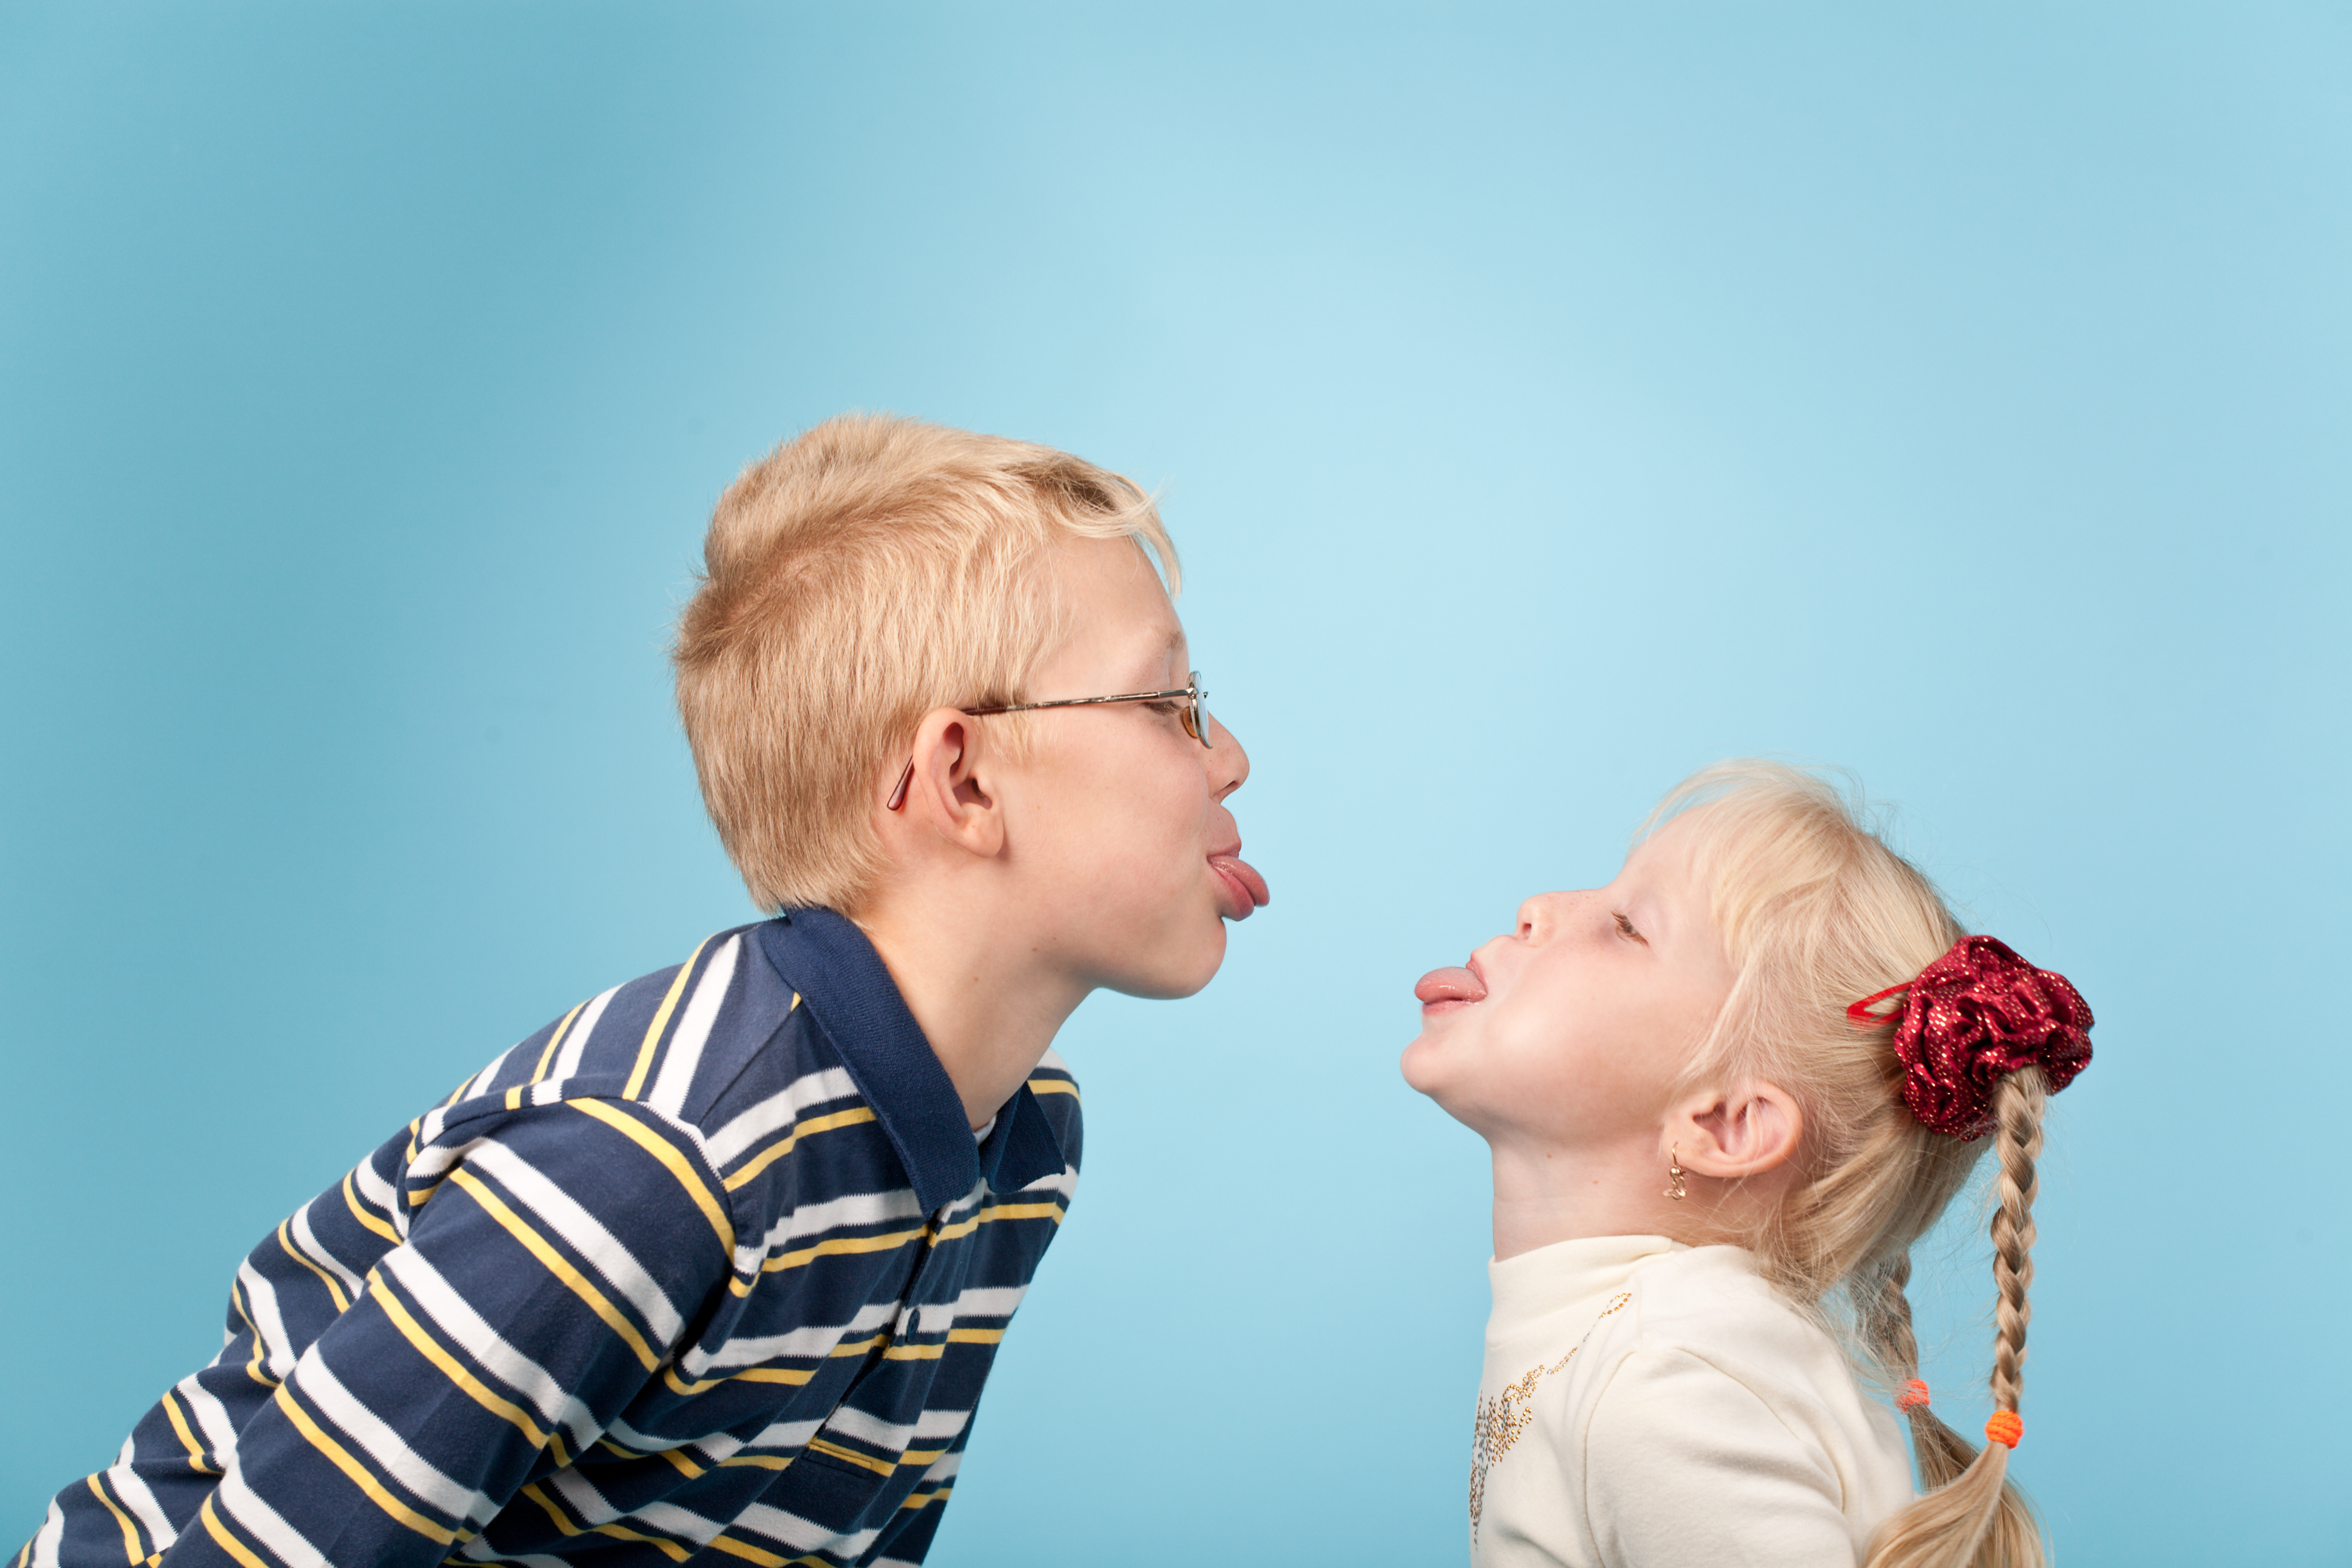 Canva - A boy and girl sticking their tongues out at each other